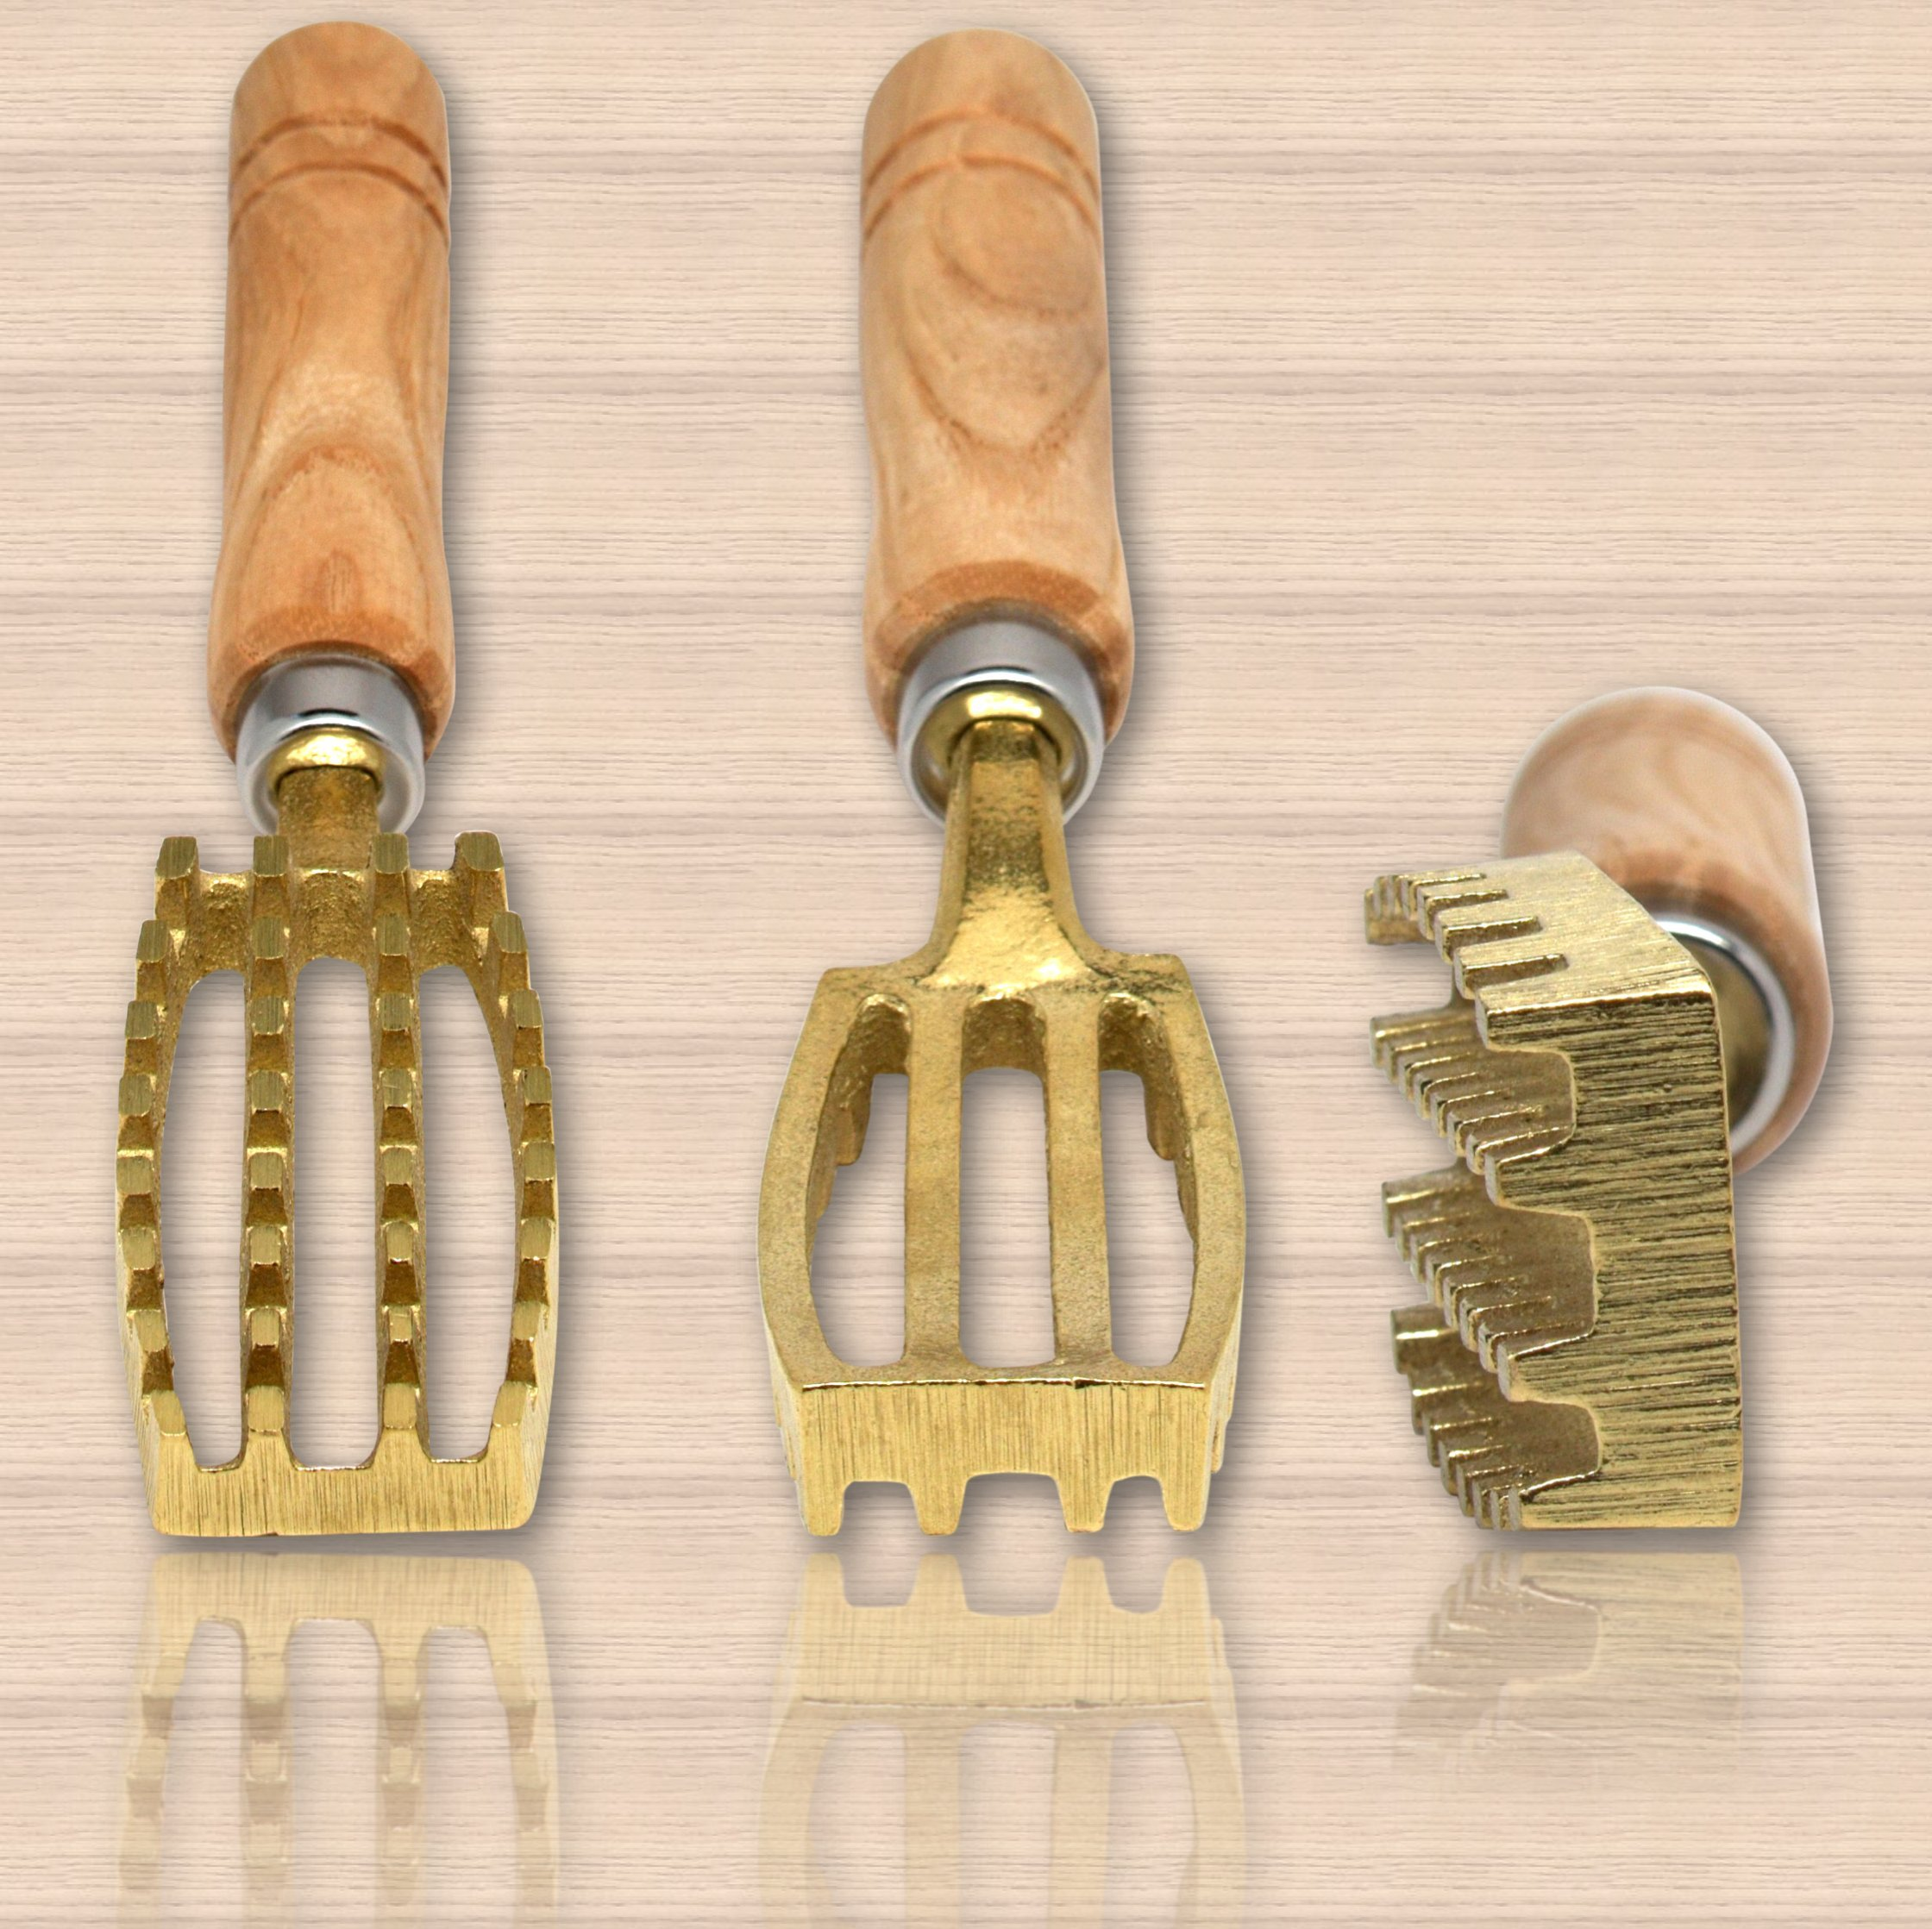 Kwizing Made in Japan Fish Scaler Brush with Brass Serrated Sawtooth and Ergonomic Wooden Handle - Easily Remove Fish Scales Without Fuss Or Mess - Handcrafted by Japanese Artisans by Kwizing (Image #9)